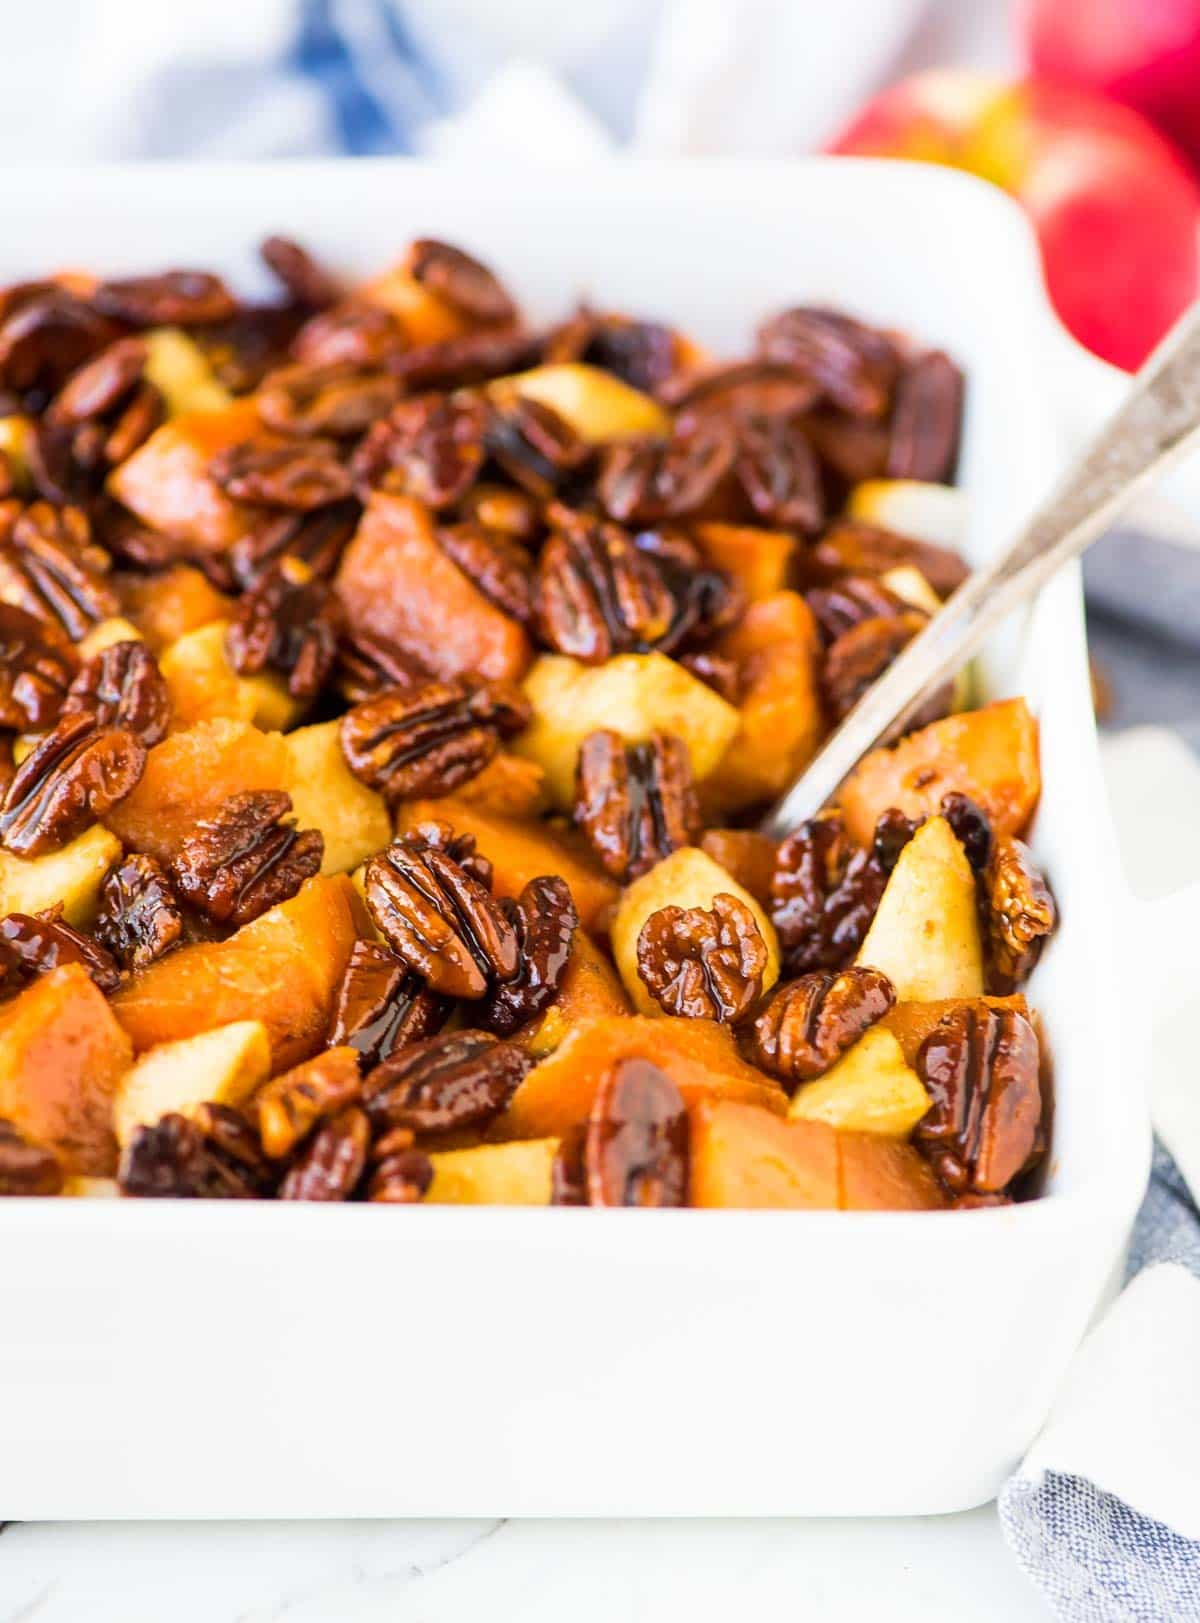 Cinnamon Glazed Sweet Potatoes with Whiskey Pecans and Apples. The perfect Thanksgiving side dish recipe and holiday recipe! Recipe at wellplated.com | @wellplated